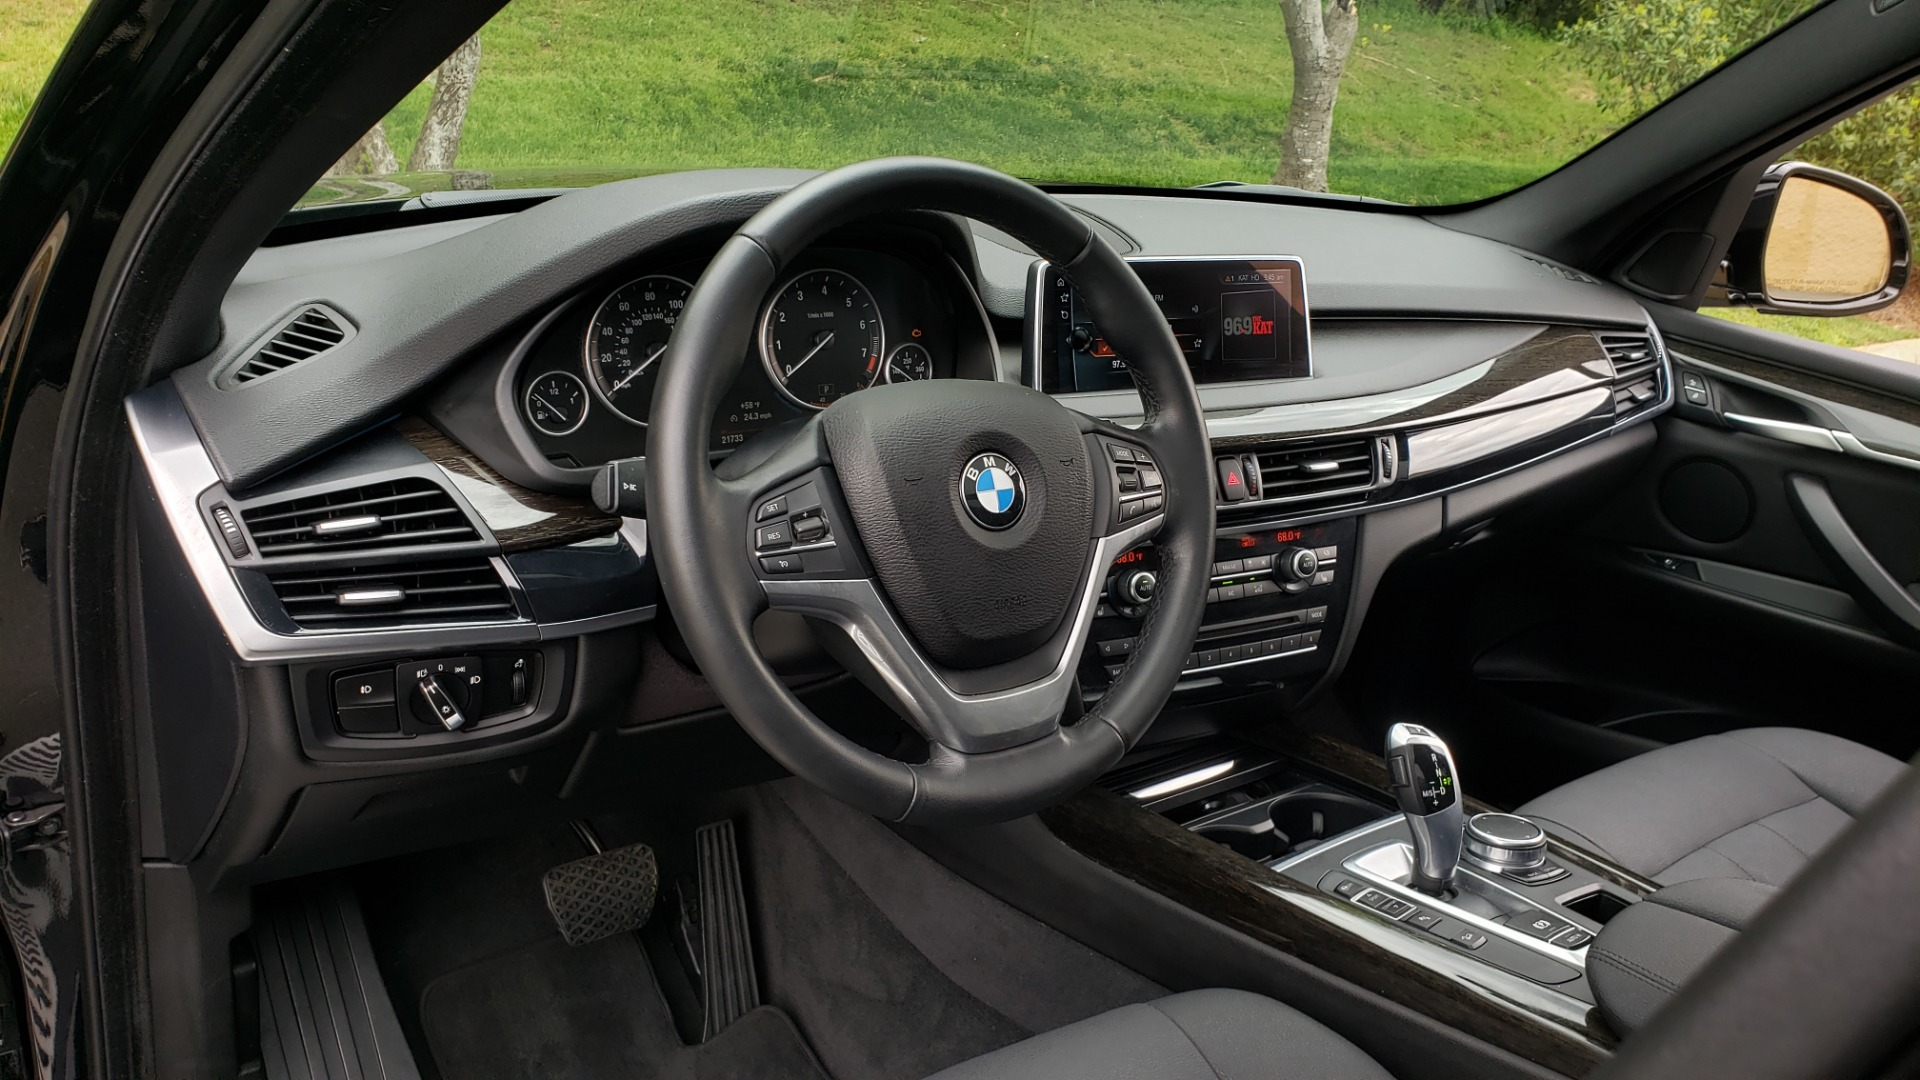 Used 2017 BMW X5 XDRIVE35I / NAV / SUNROOF / REARVIEW / HTD STS for sale Sold at Formula Imports in Charlotte NC 28227 42